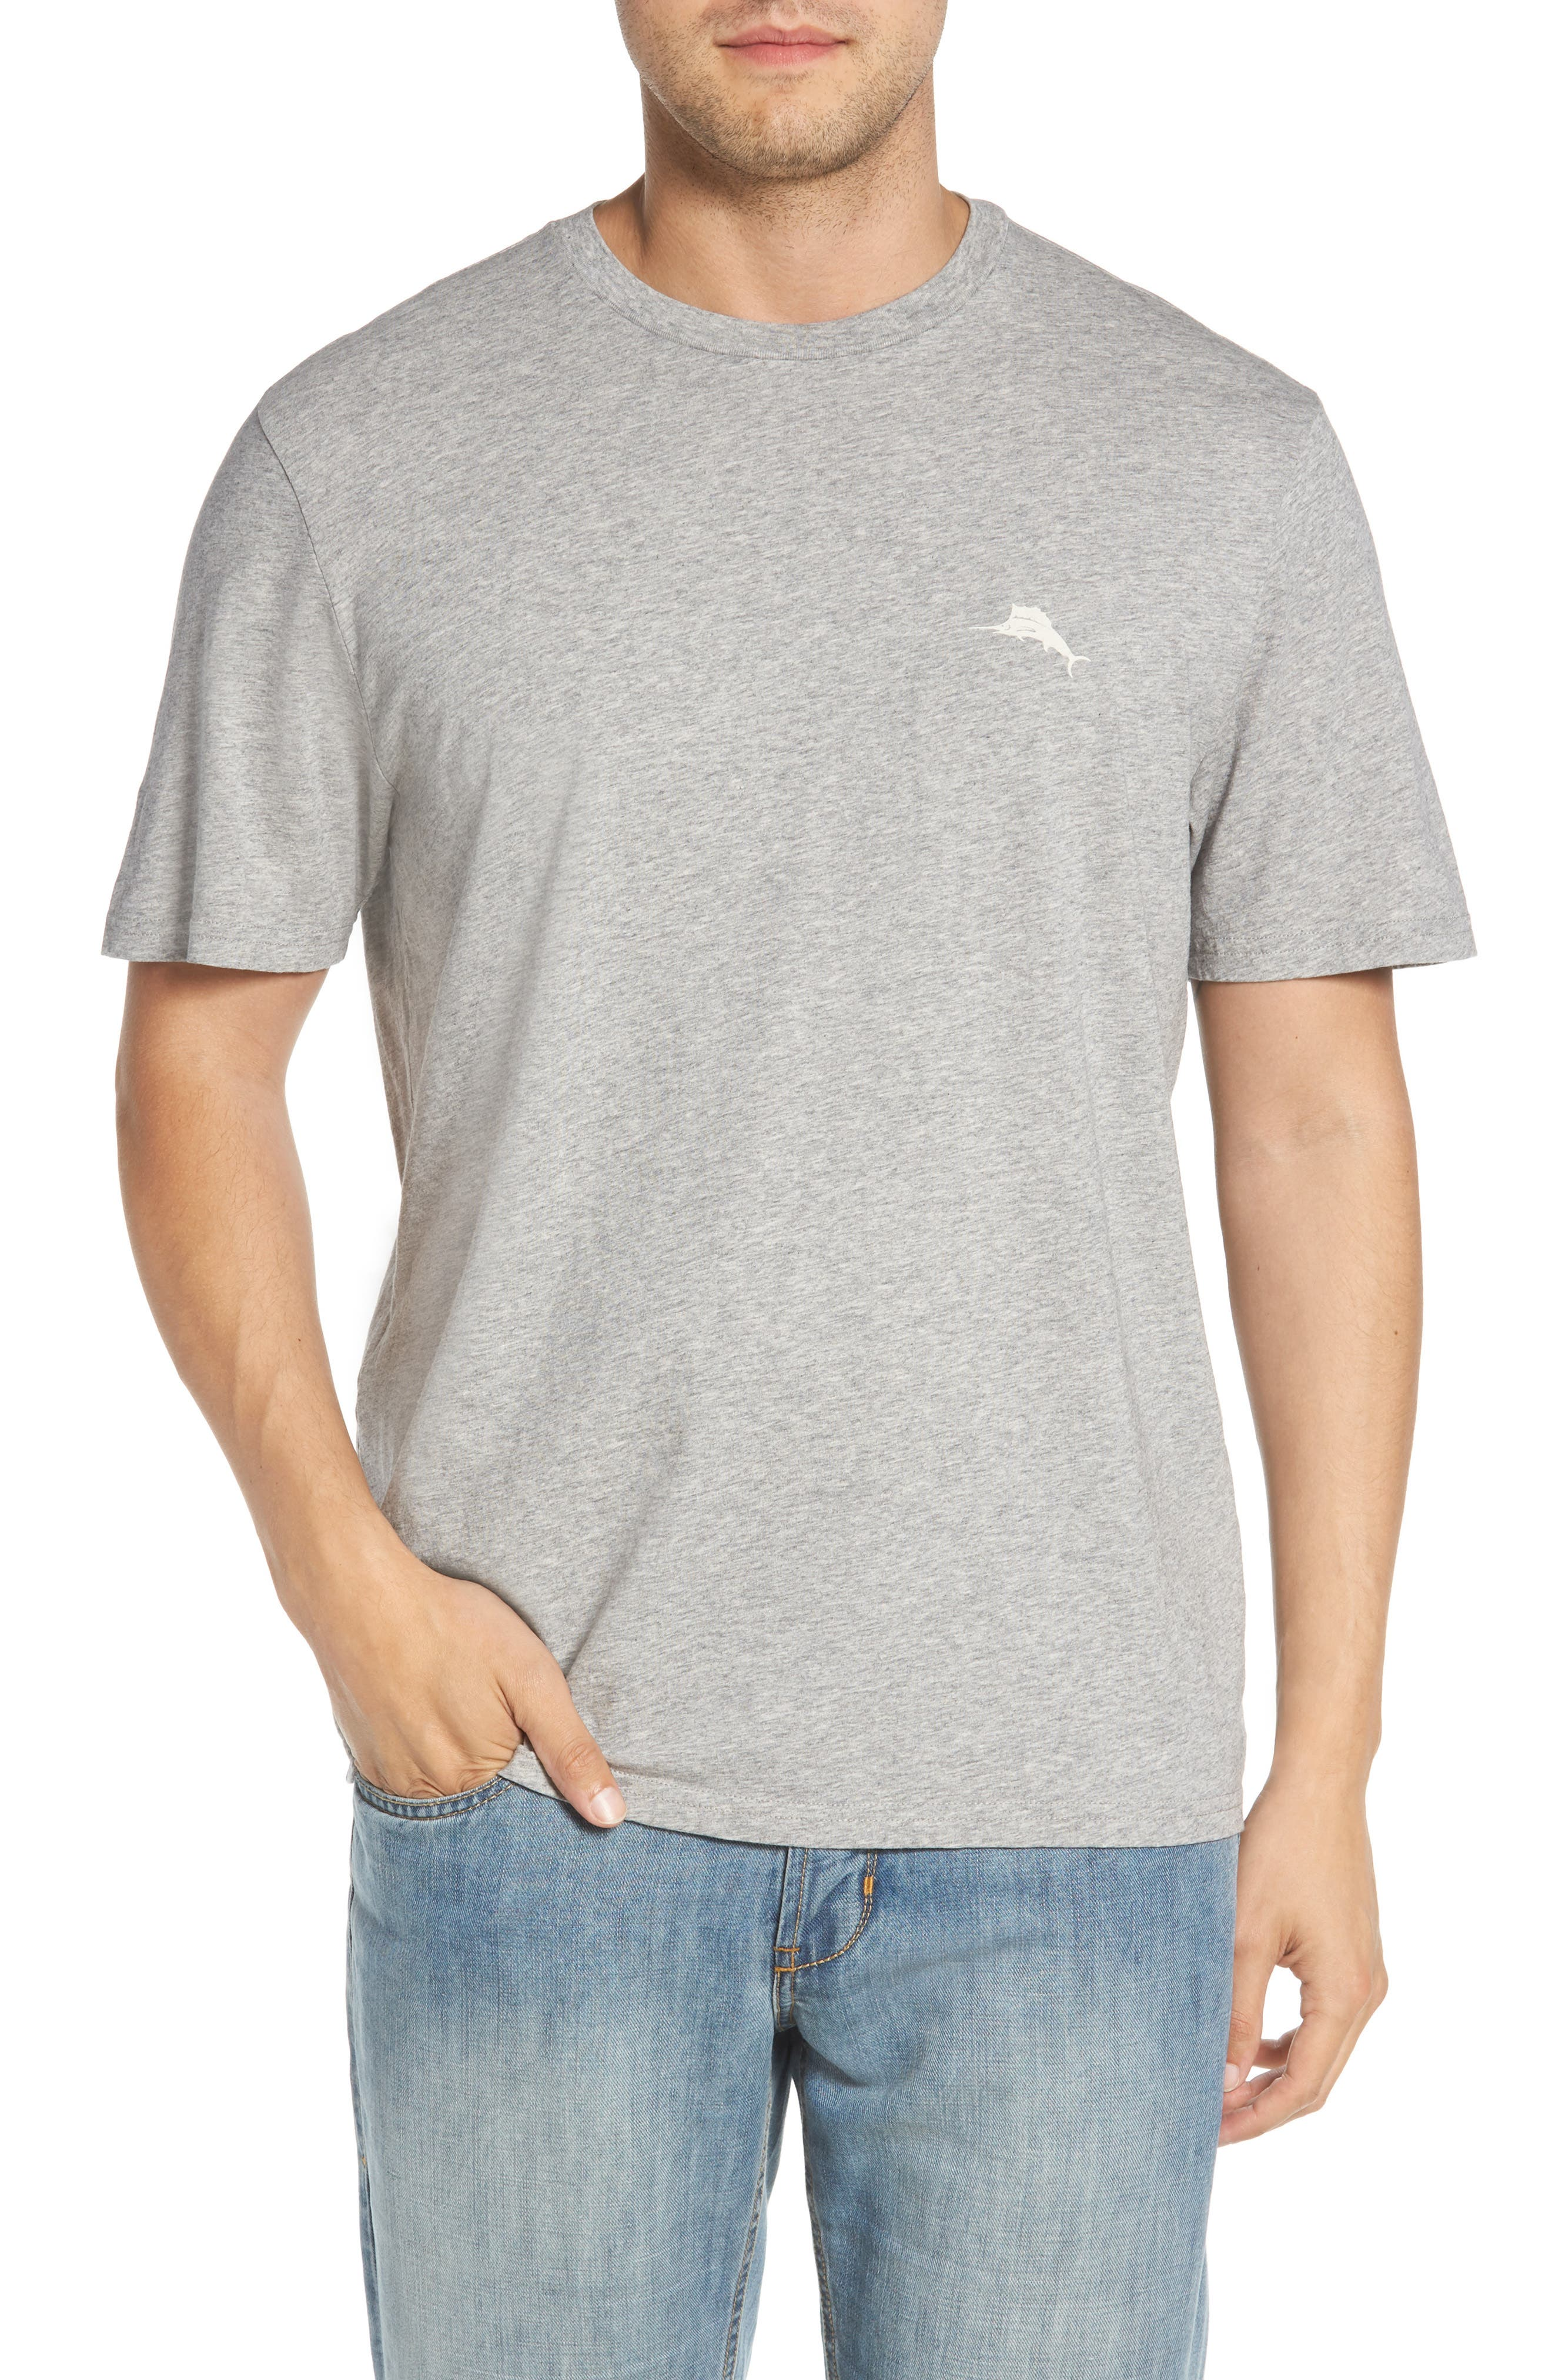 Vacation Collage T-Shirt,                             Main thumbnail 1, color,                             Grey Heather